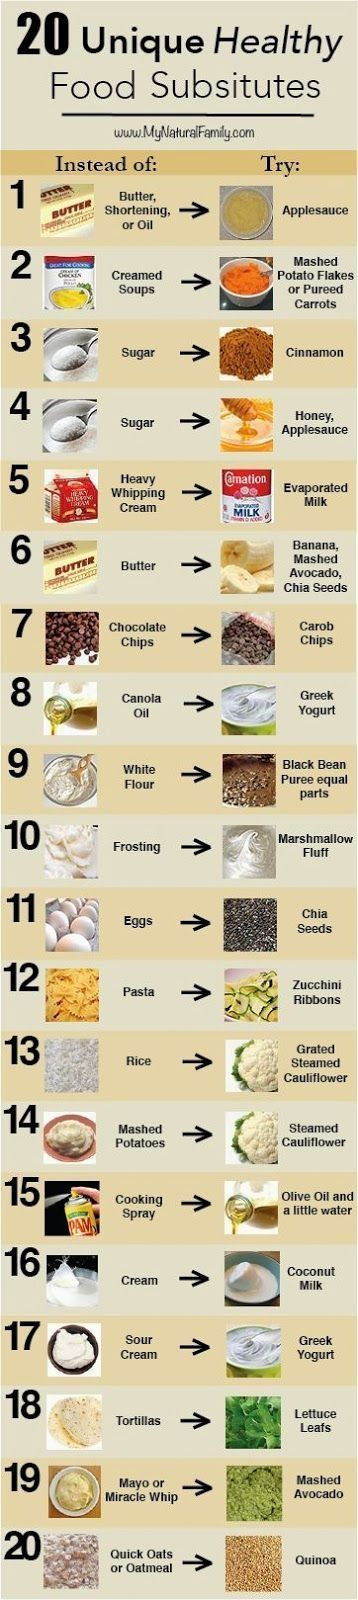 20 substitutes for healthy cooking http://paleo-diet-menu.blogspot.com/2014/06/cooking-tips-tricks.html